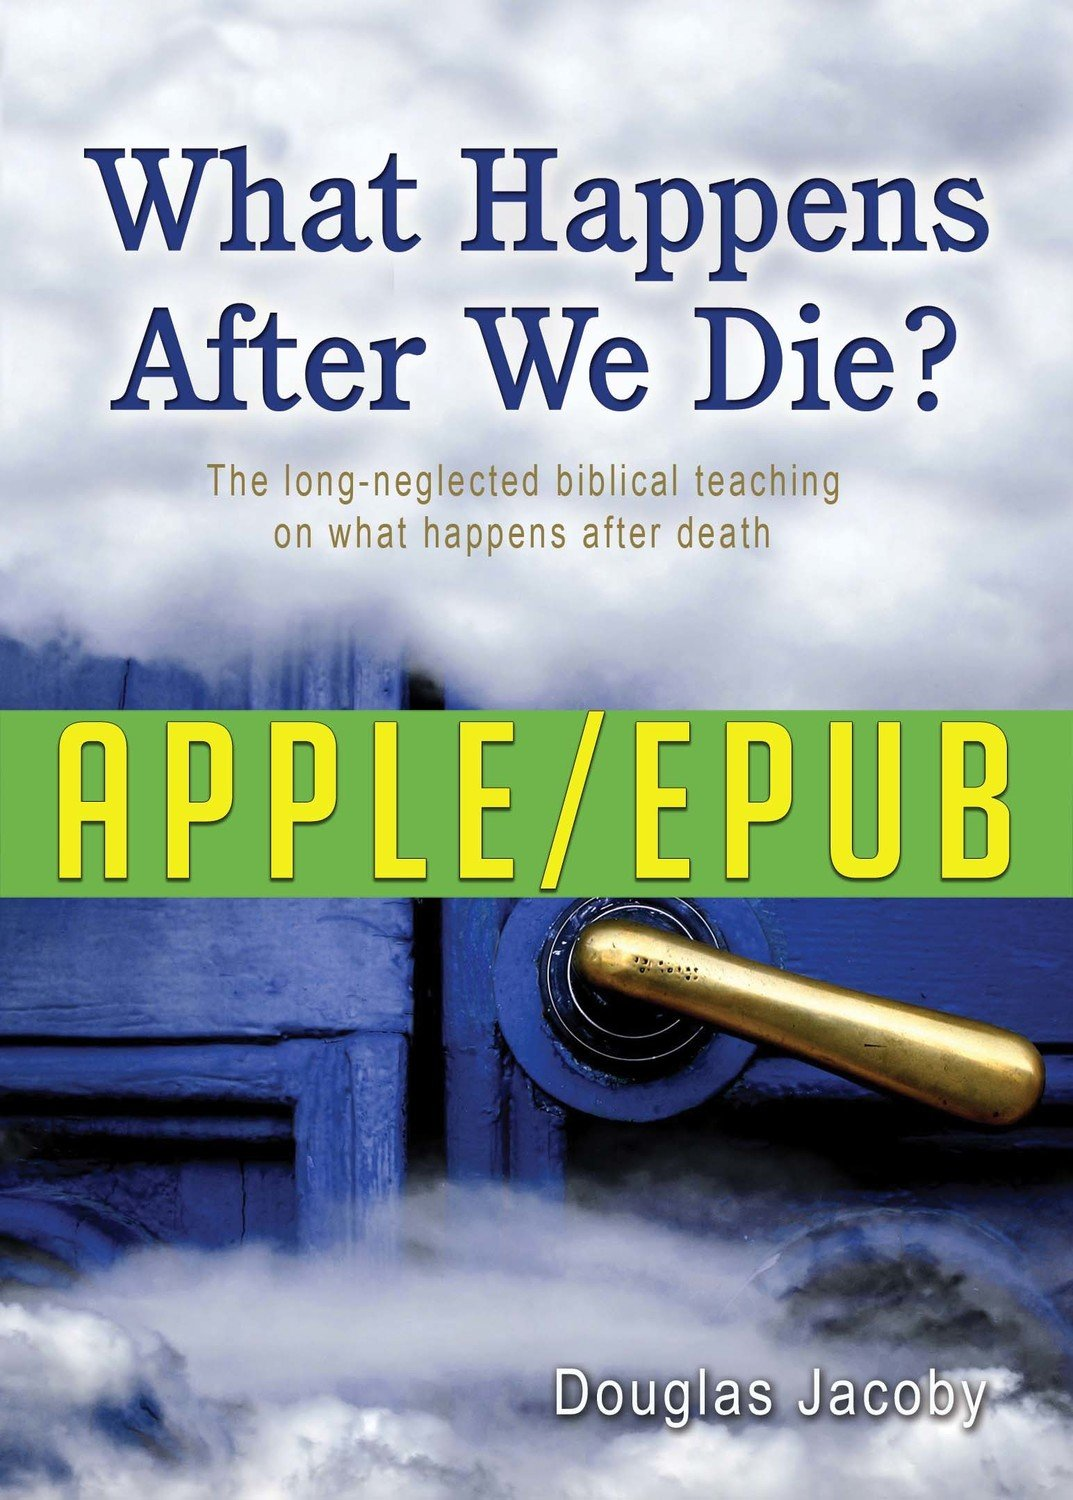 What Happens After We Die? (Apple/ePub)